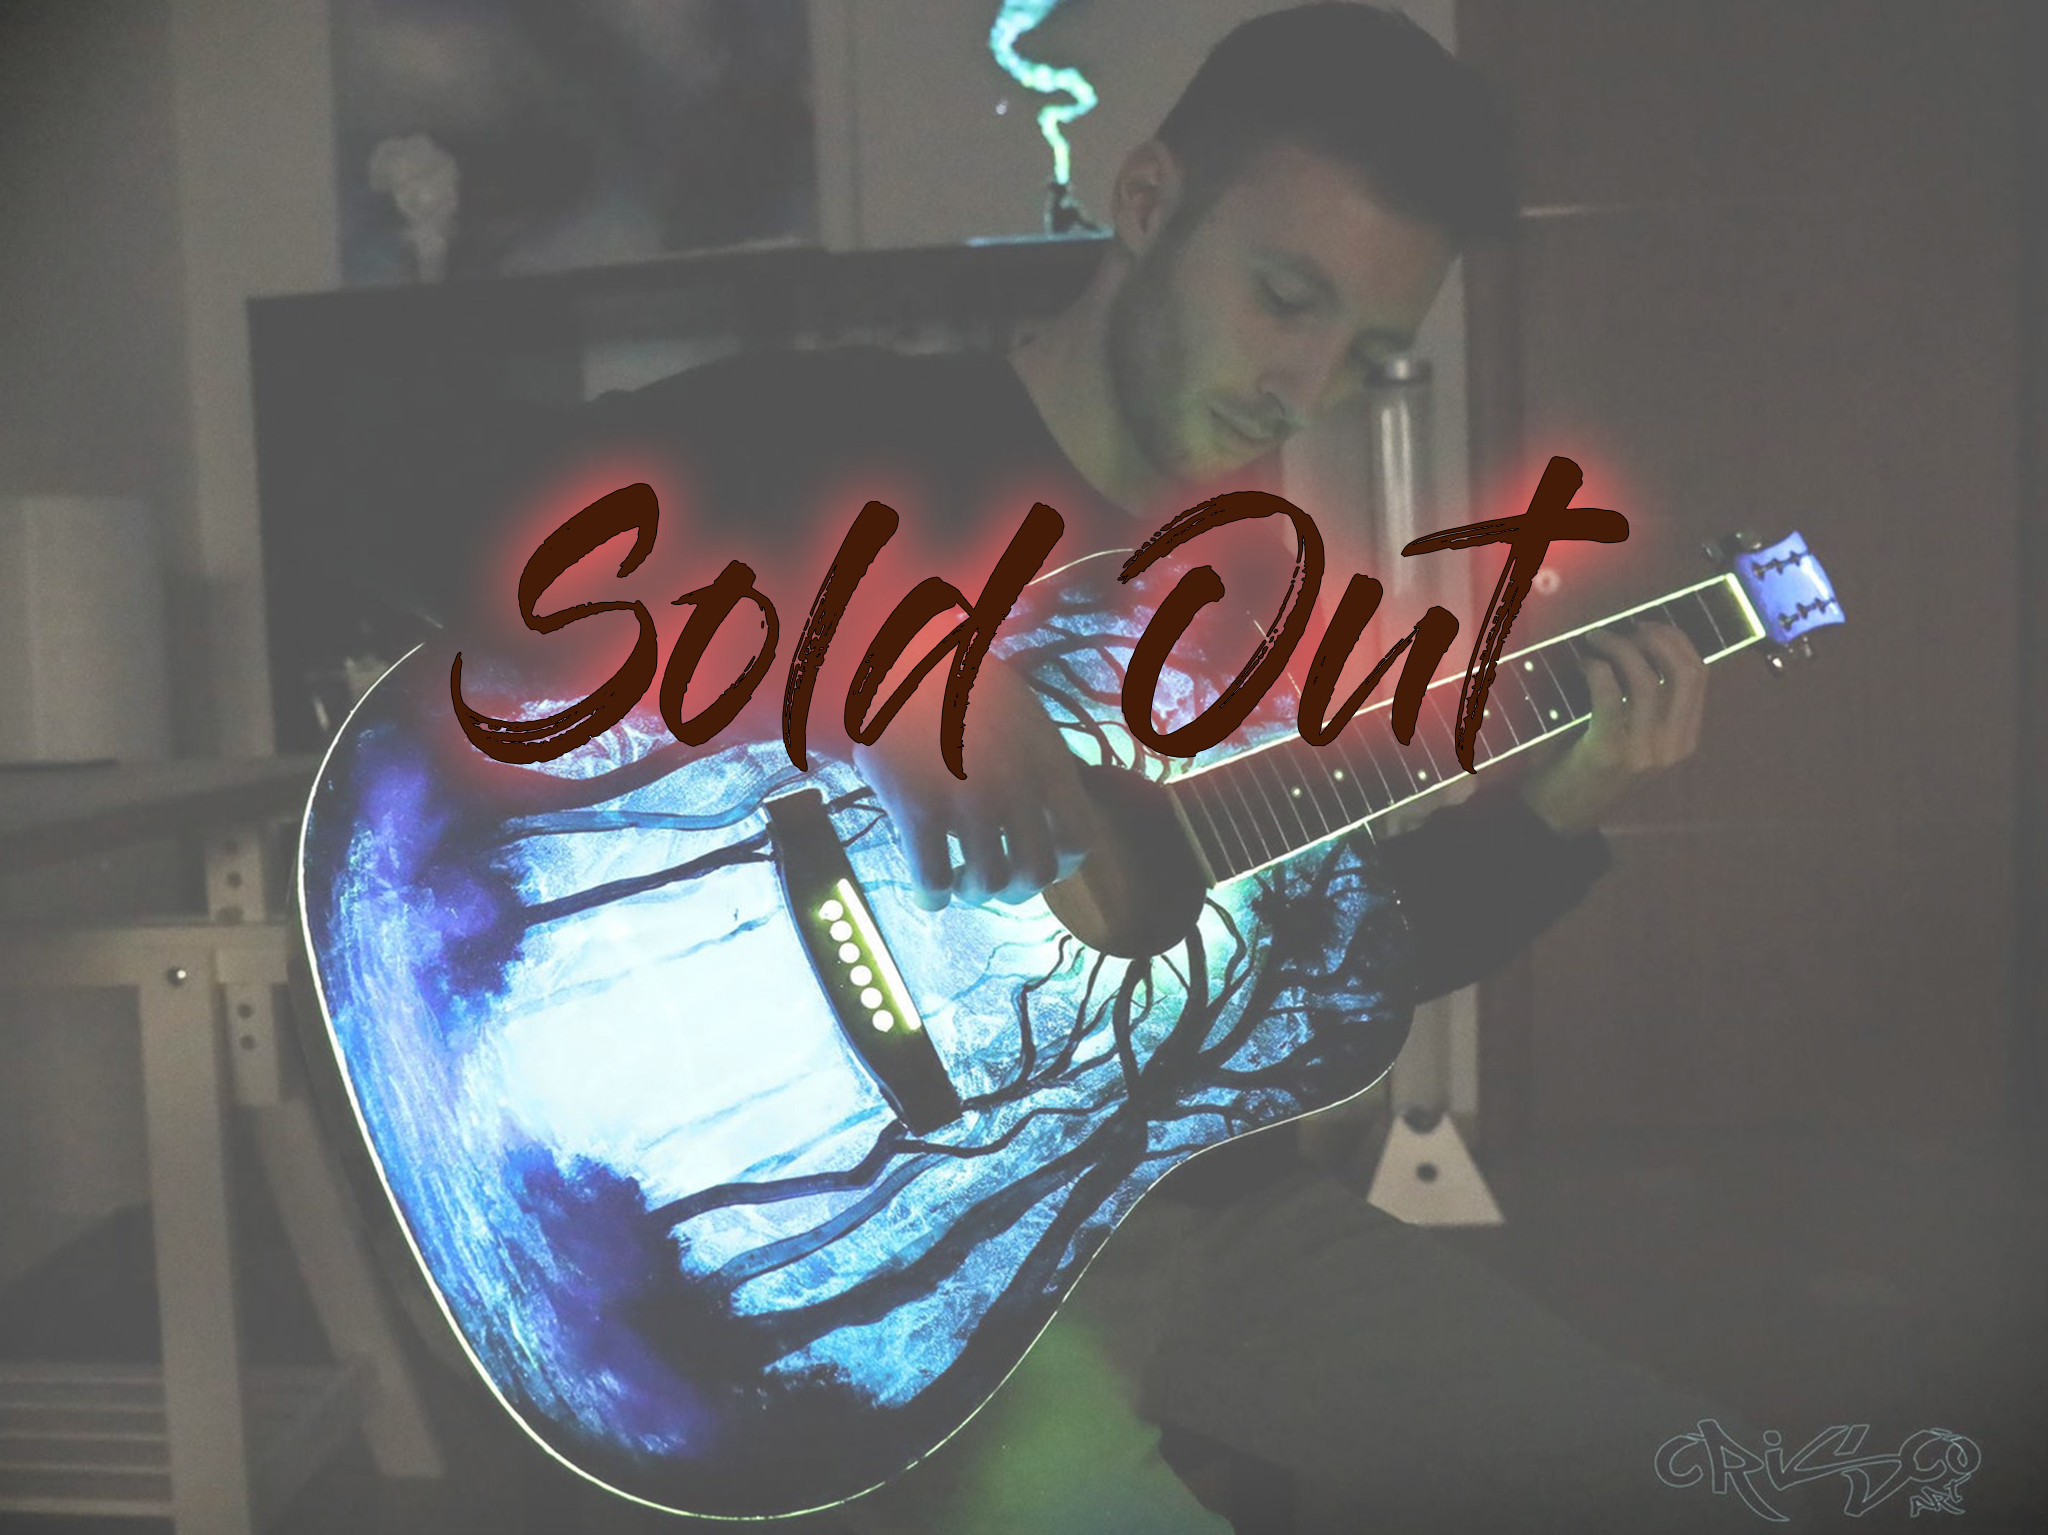 sold out gui